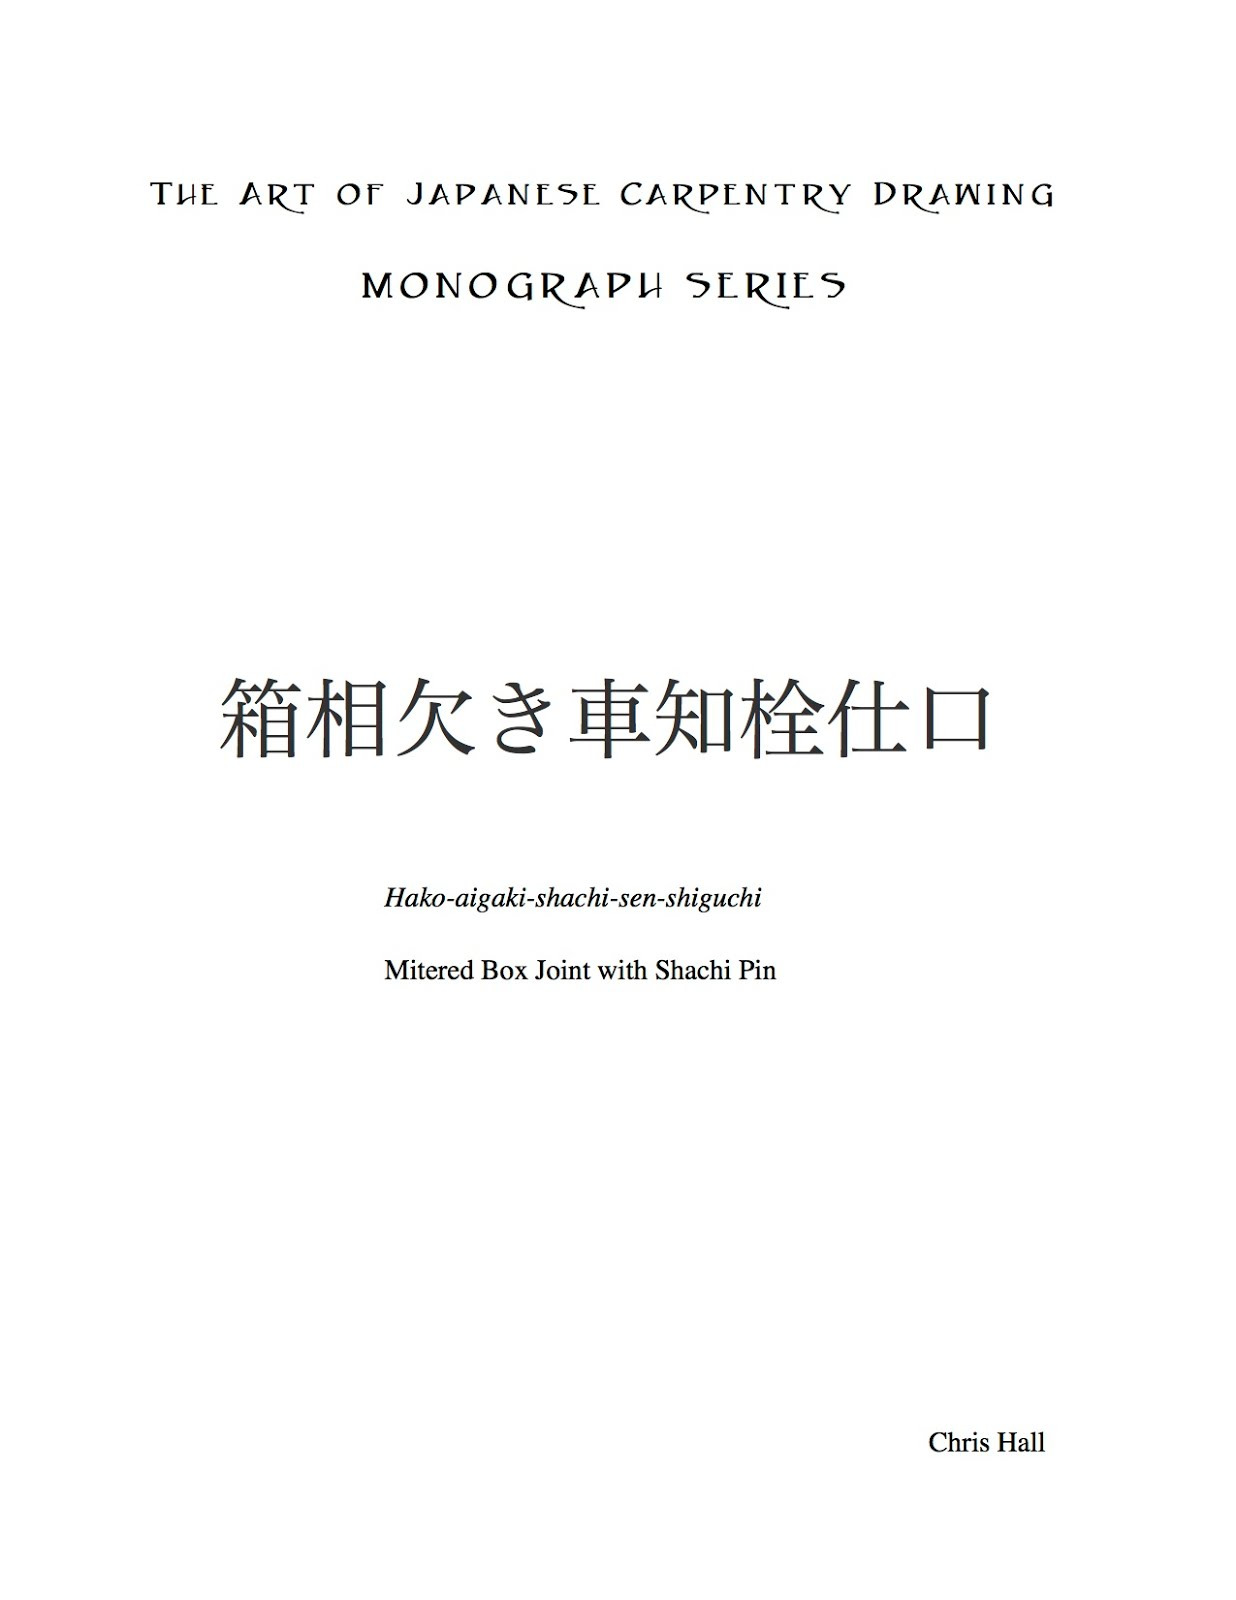 The Art of Japanese Carpentry Drawing, Monograph Series